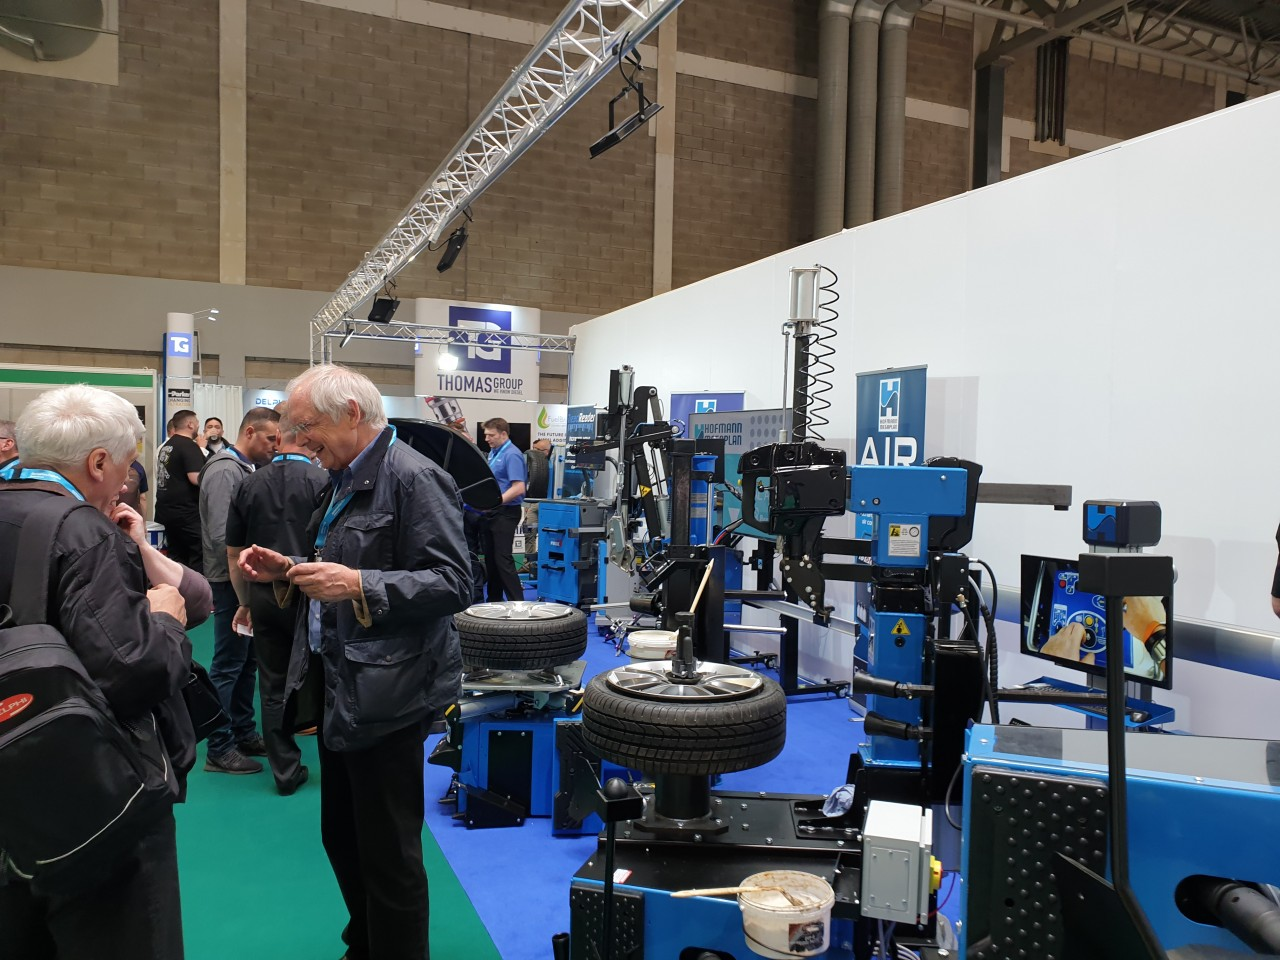 Automechanika 2019 show is in full swing at the Hofmann Megaplan stand - plenty of activity and demonstrations taking place to new and existing customers.